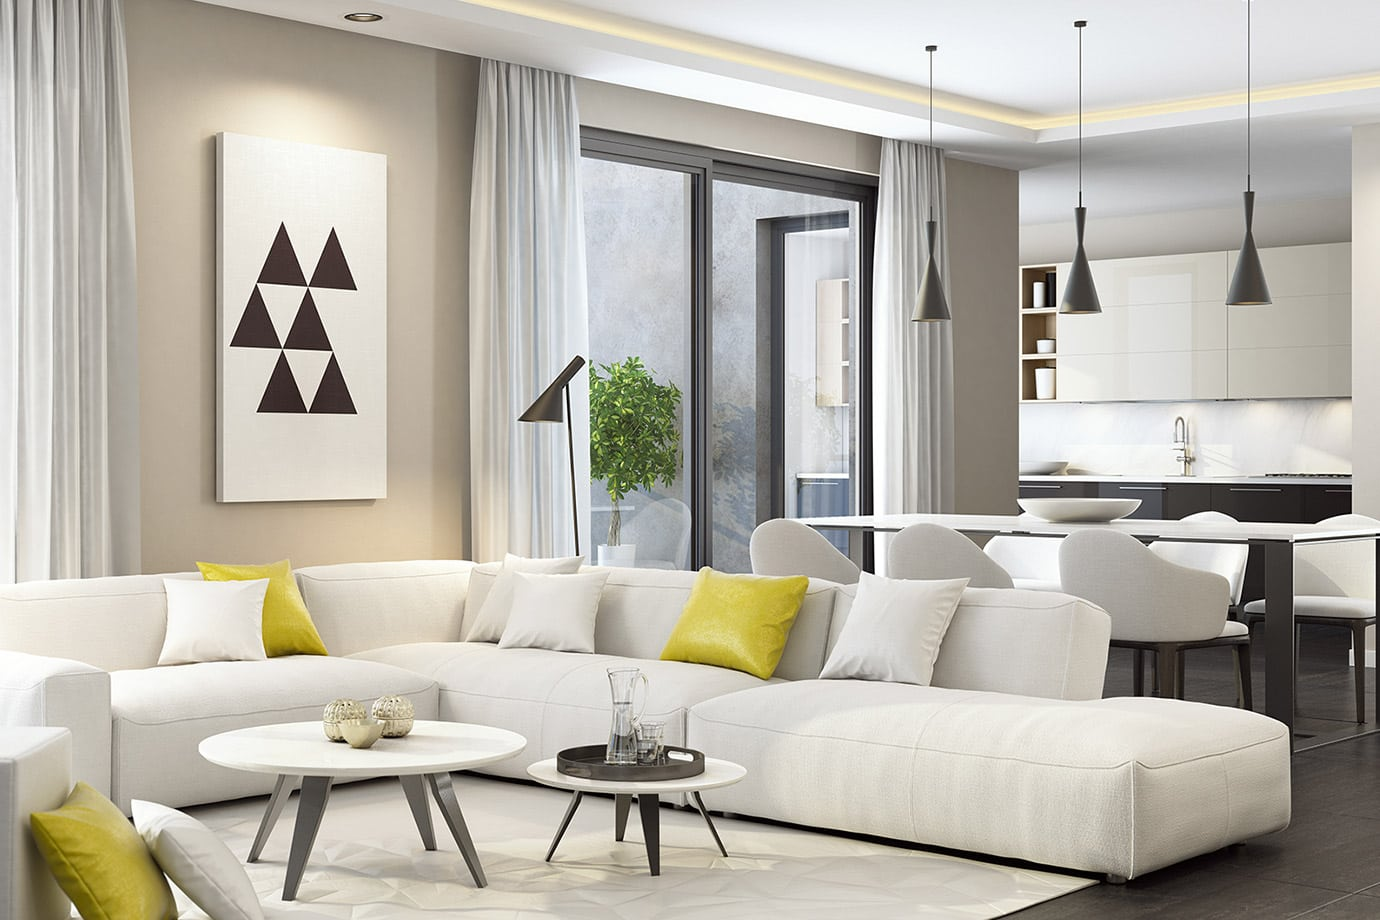 cleaning and repair of home goods toronto